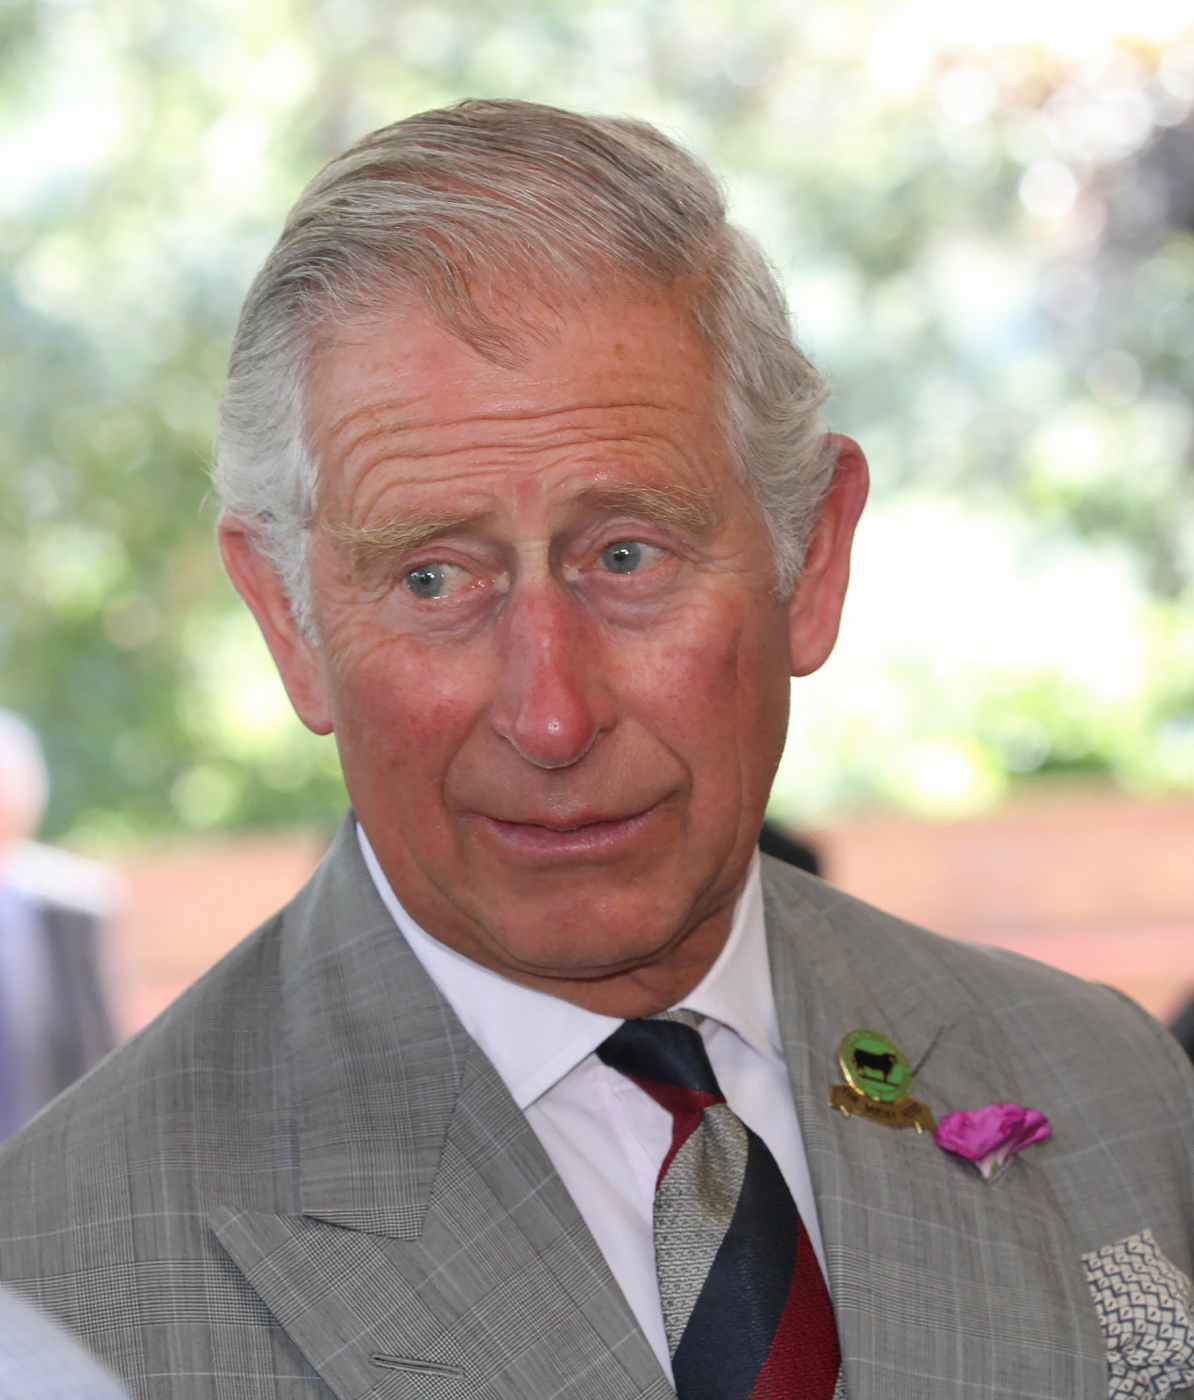 The Prince of Wales supports nation's bid to host global culinary event in 2024